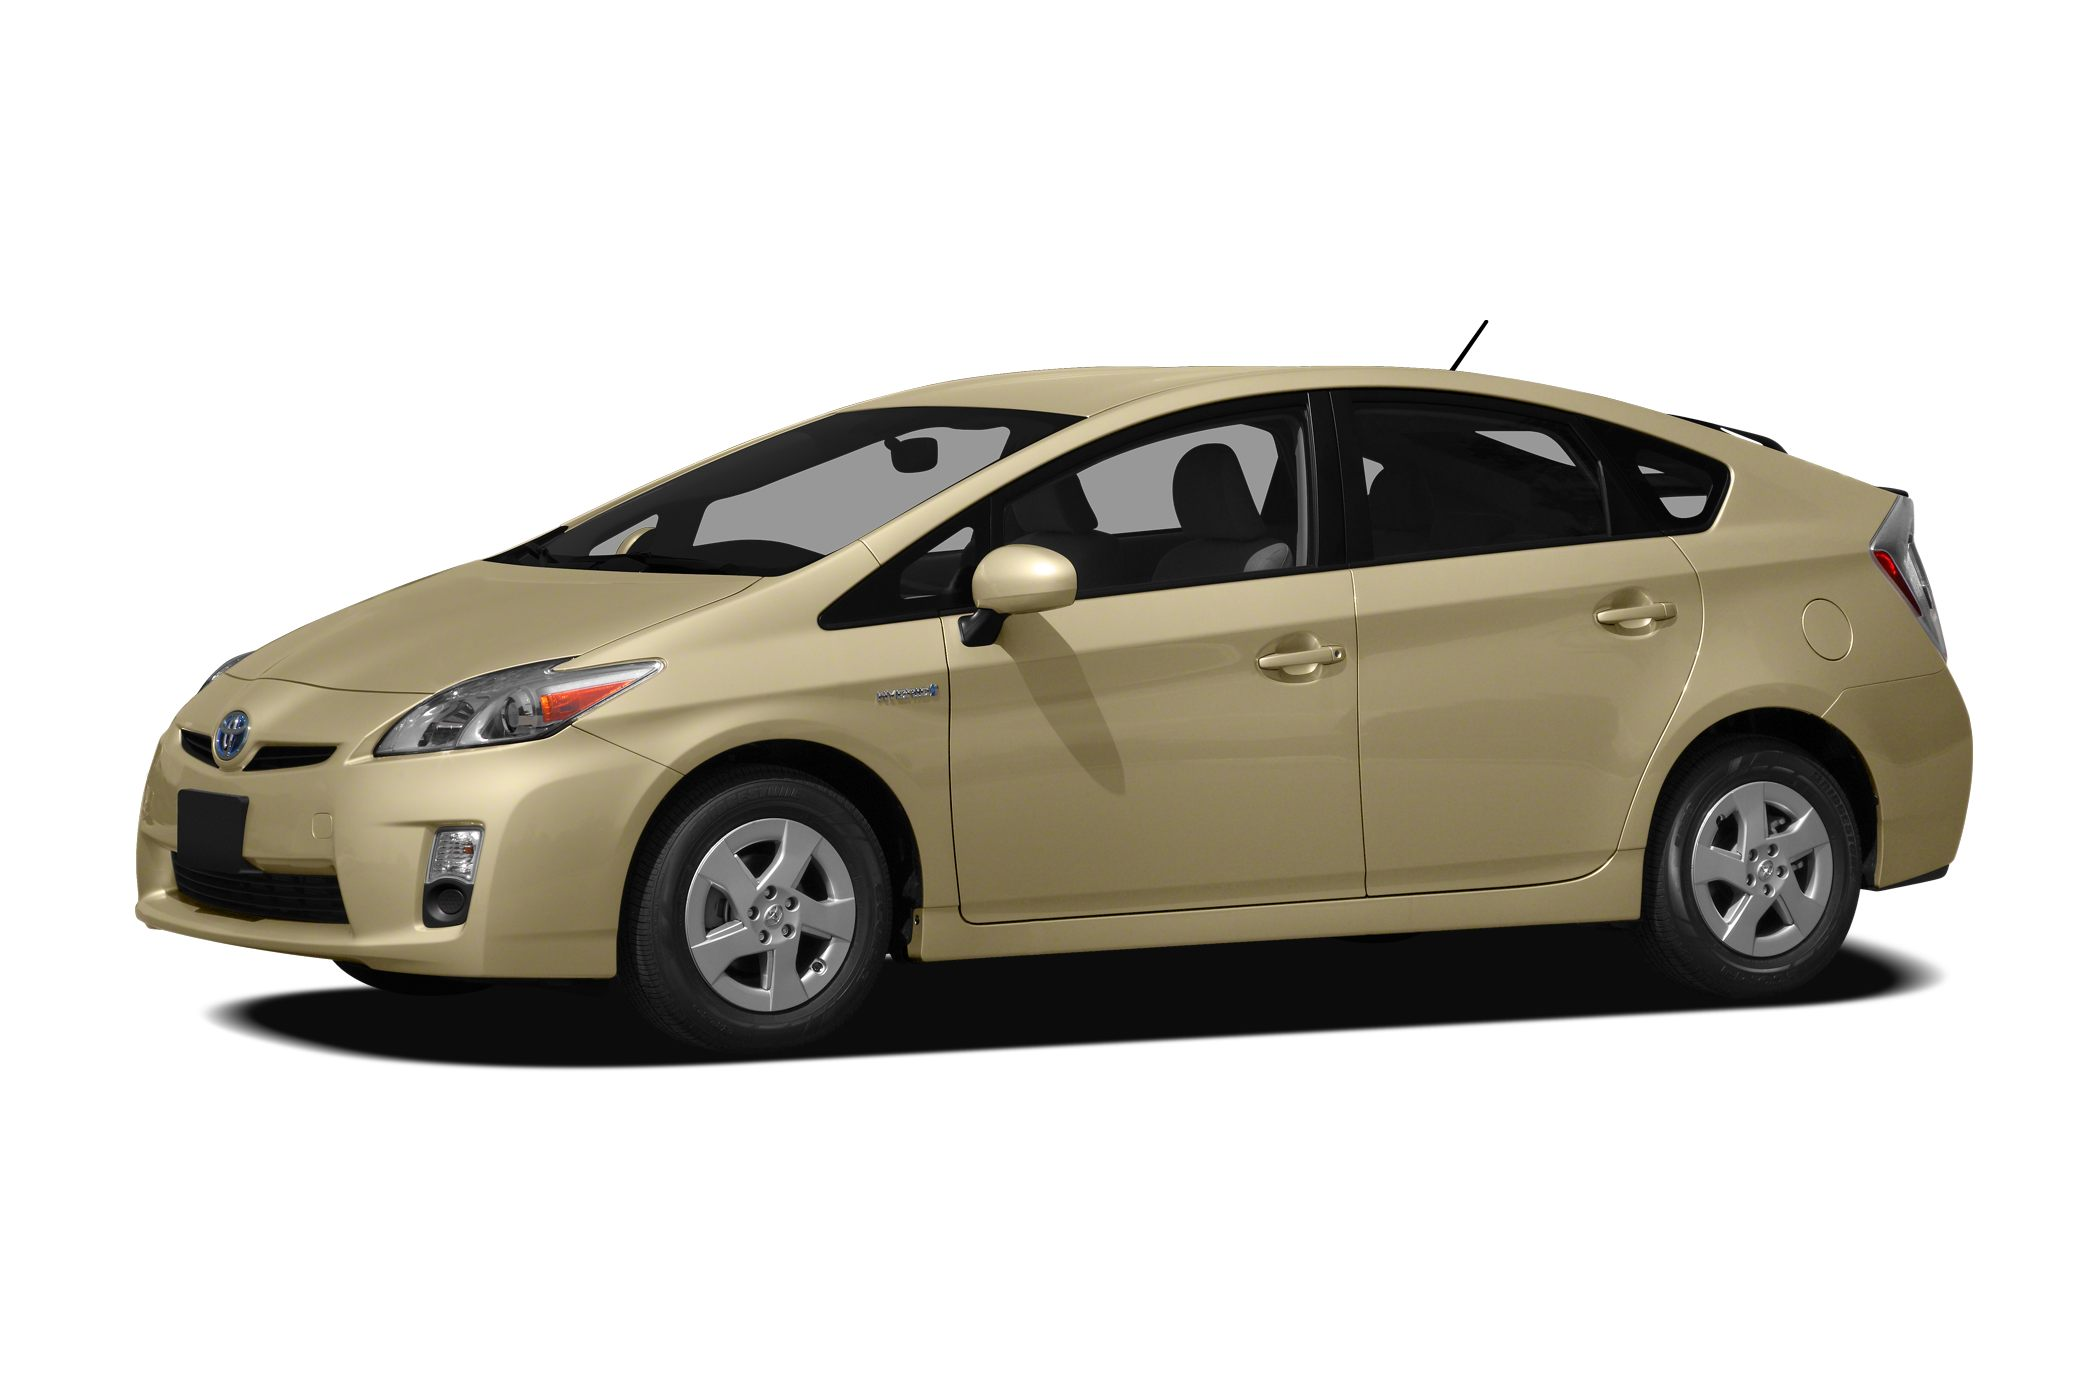 2010 Toyota Prius II Hatchback for sale in Savannah for $14,991 with 58,996 miles.